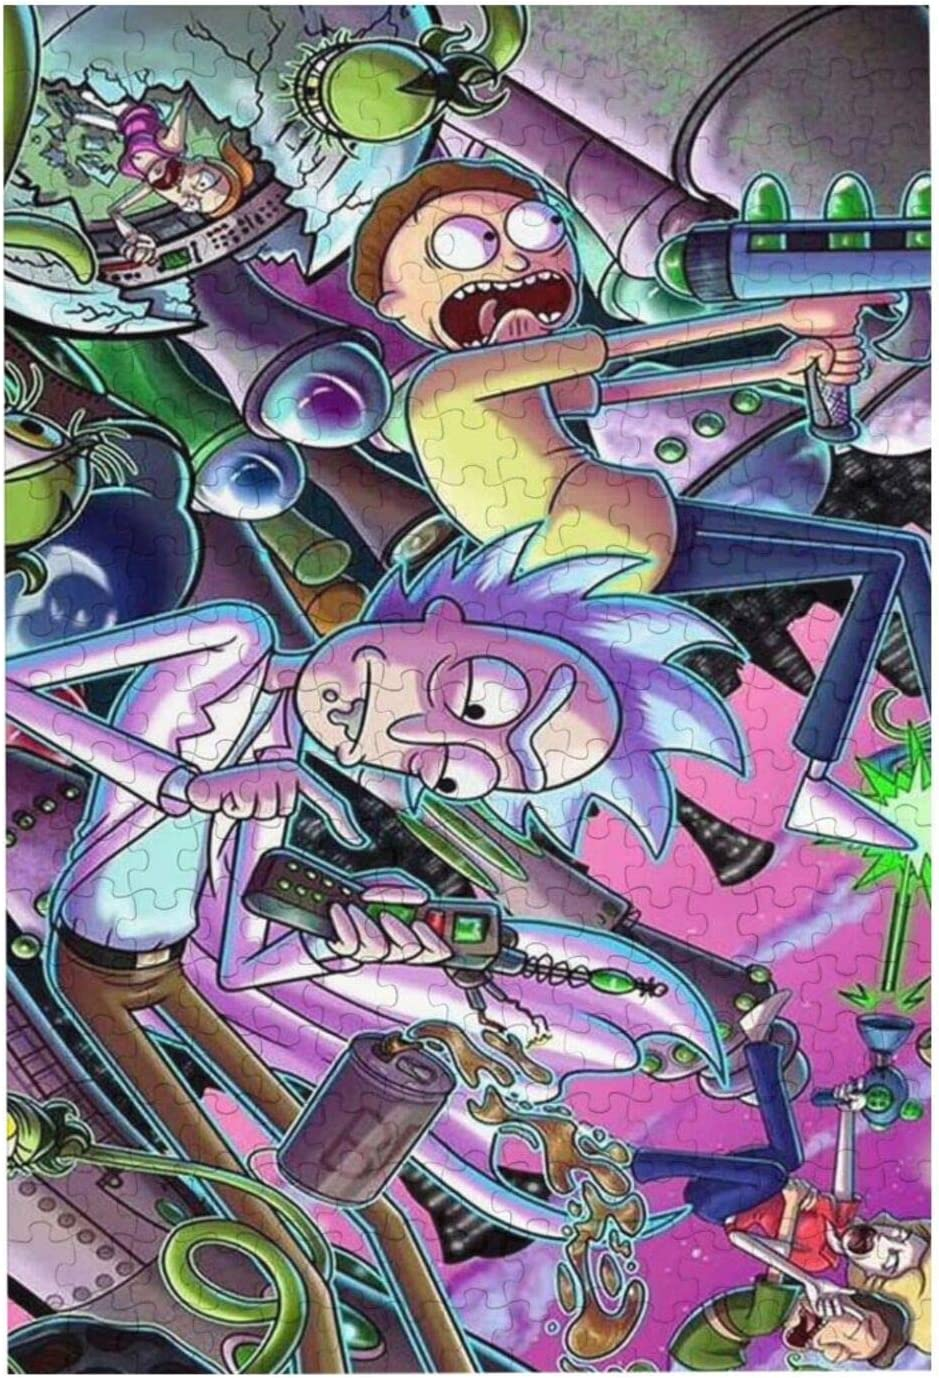 Easier Rick and Morty Puzzle-300 Pieces Color Challenge Jigsaw Puzzles No Stress No Mess Faster Cleaner Suited for All Puzzle Shapes//Sizes for Adults and Kids